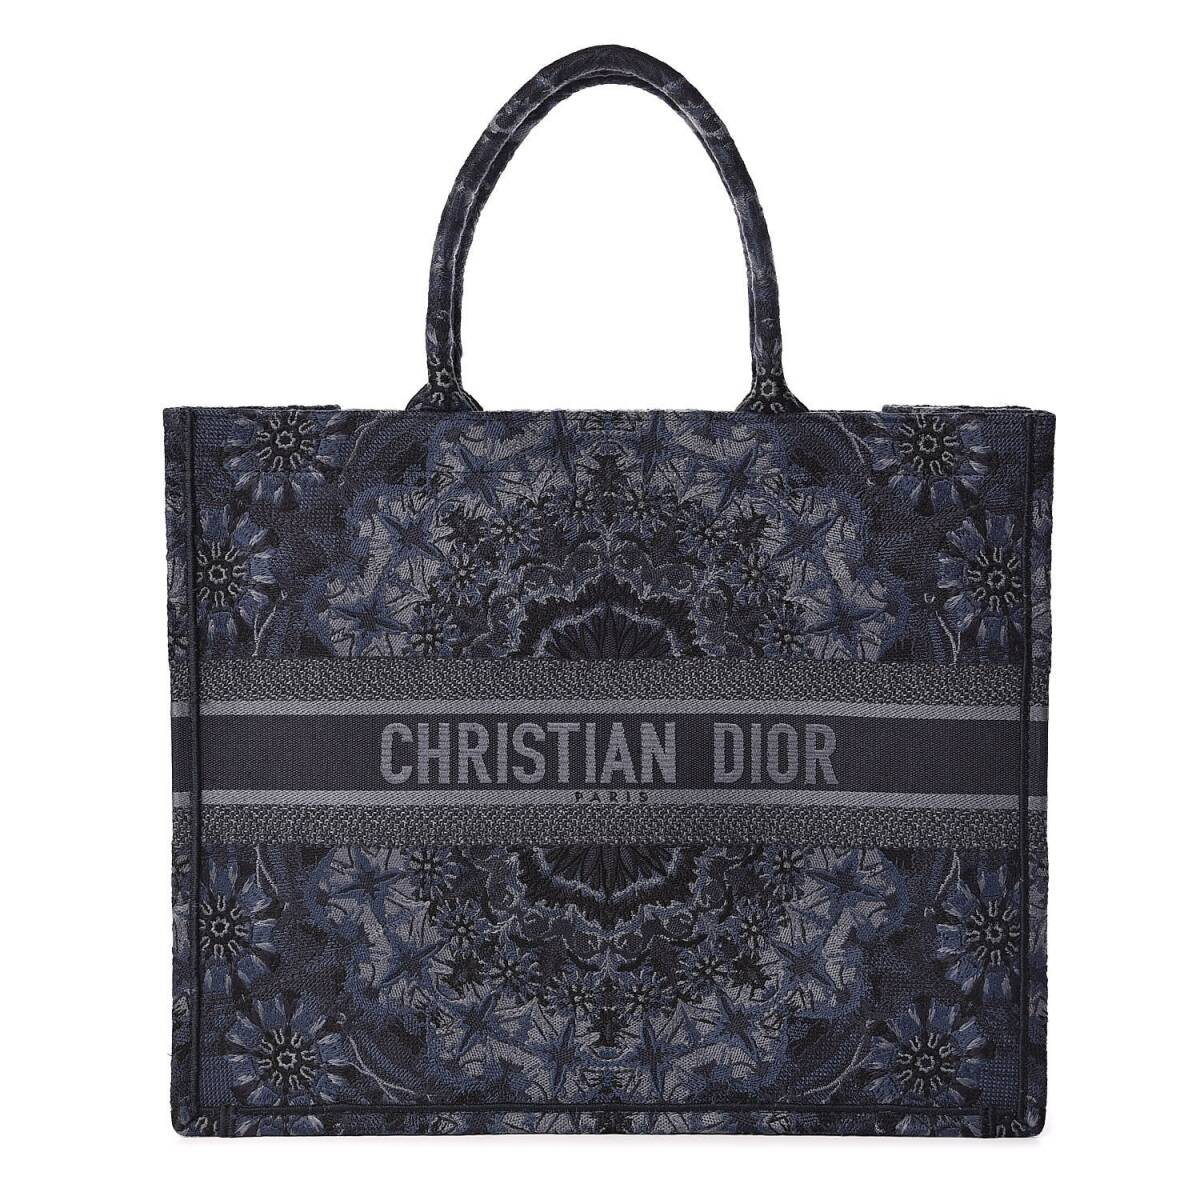 BOLSA DIOR BOOK TOTE CANVAS KALEIDIOROSCOPIC AZUL - 2.790,00 10 X 279,00